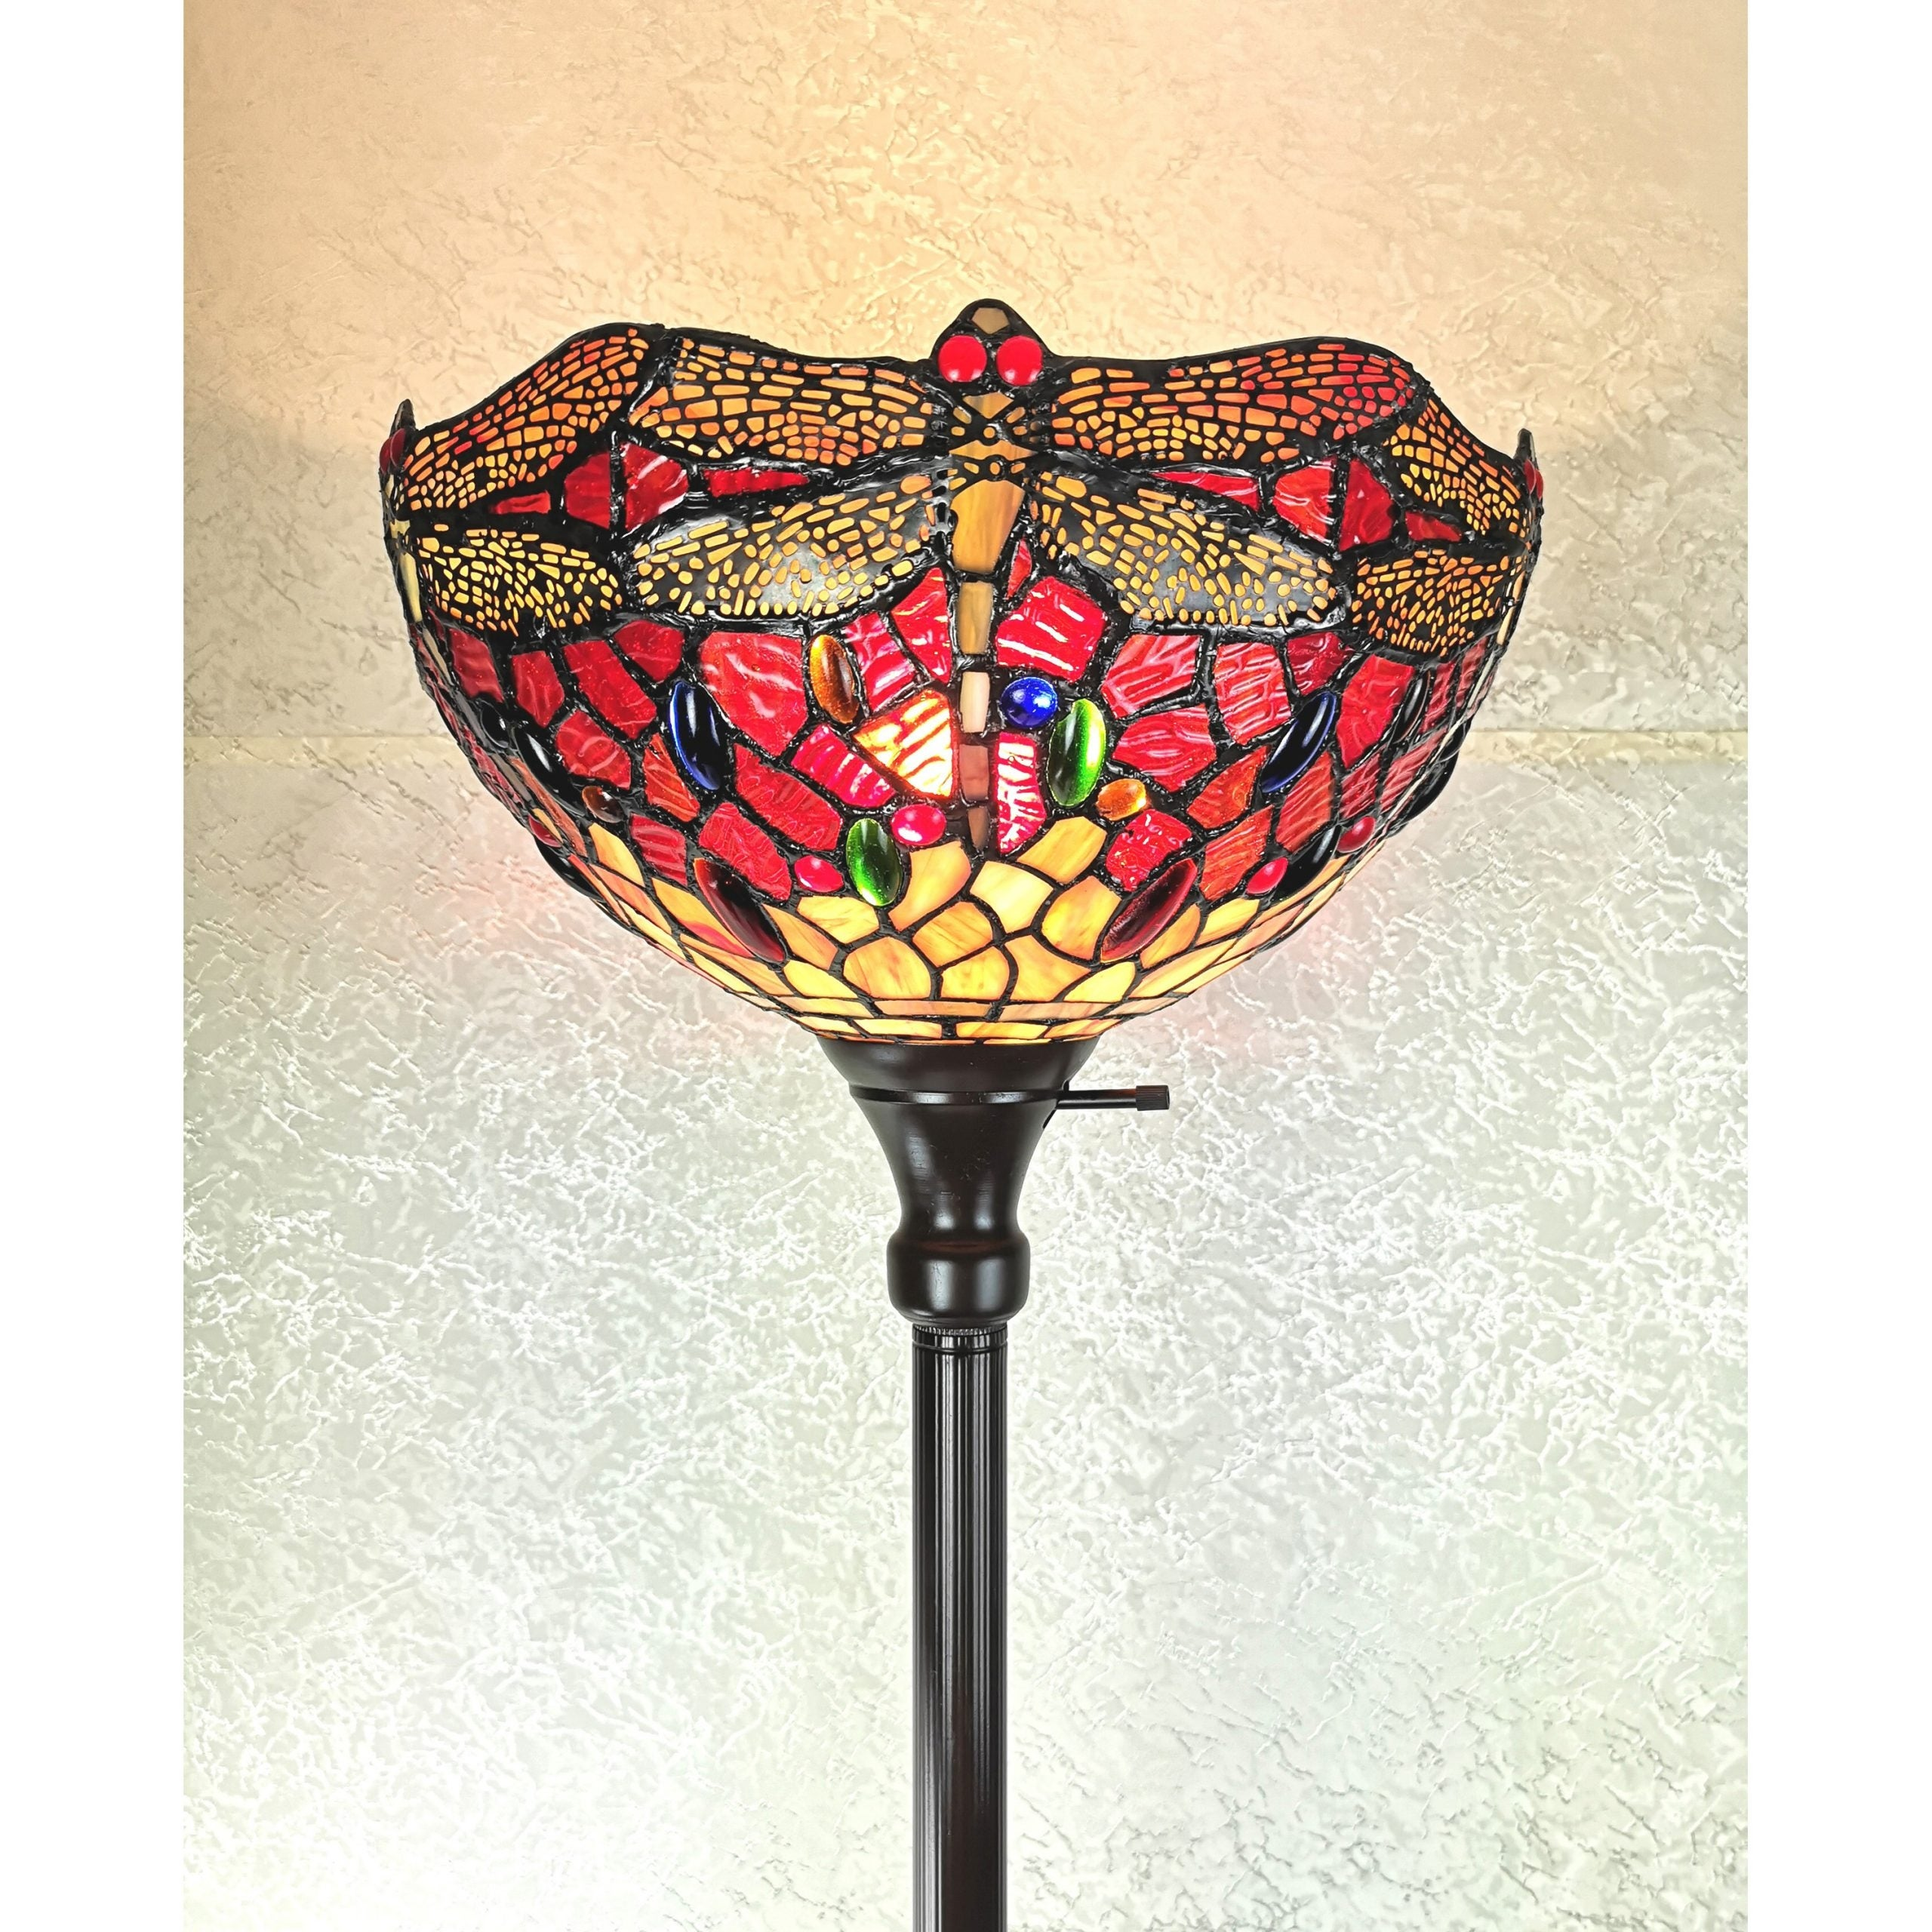 Shop Black Friday Deals On Tiffany Style Floor Lamp Torchiere Standing 72 Tall Stained Glass White Dragonfly Bedroom Reading Am040fl14b Amora Lighting Overstock 28389540